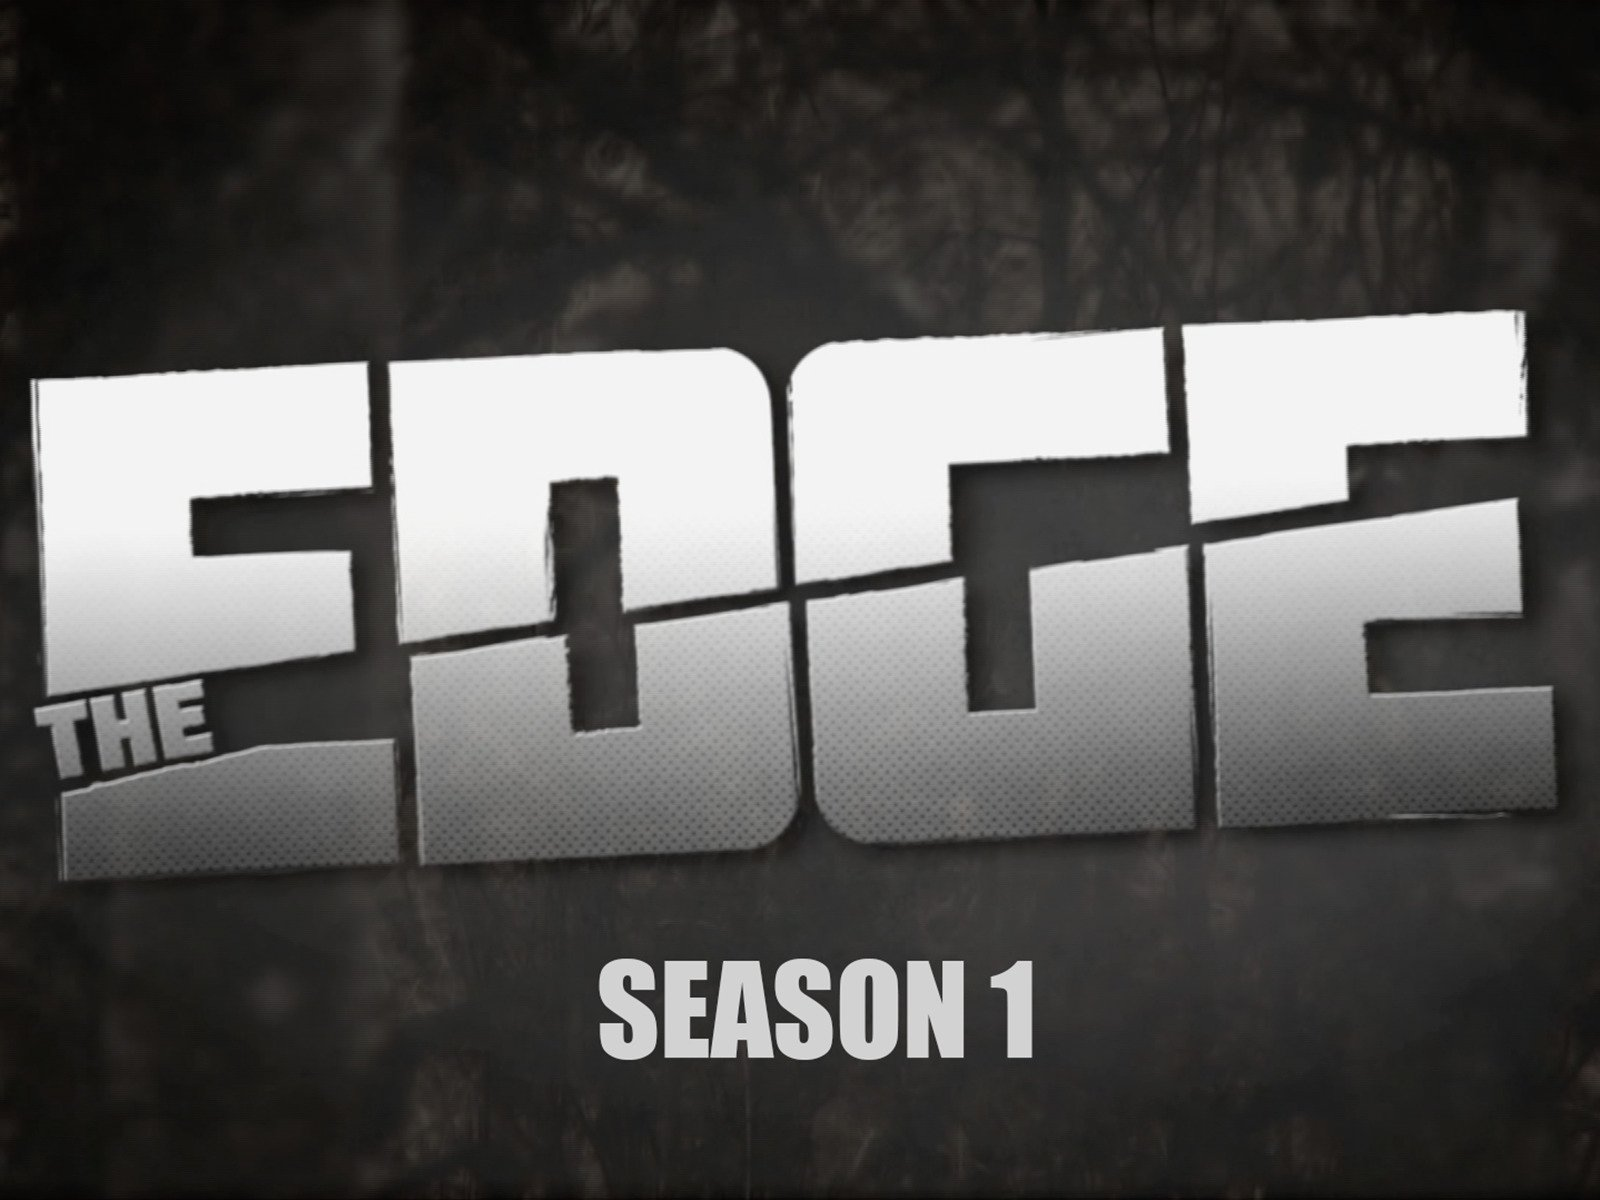 The Edge - Season 1